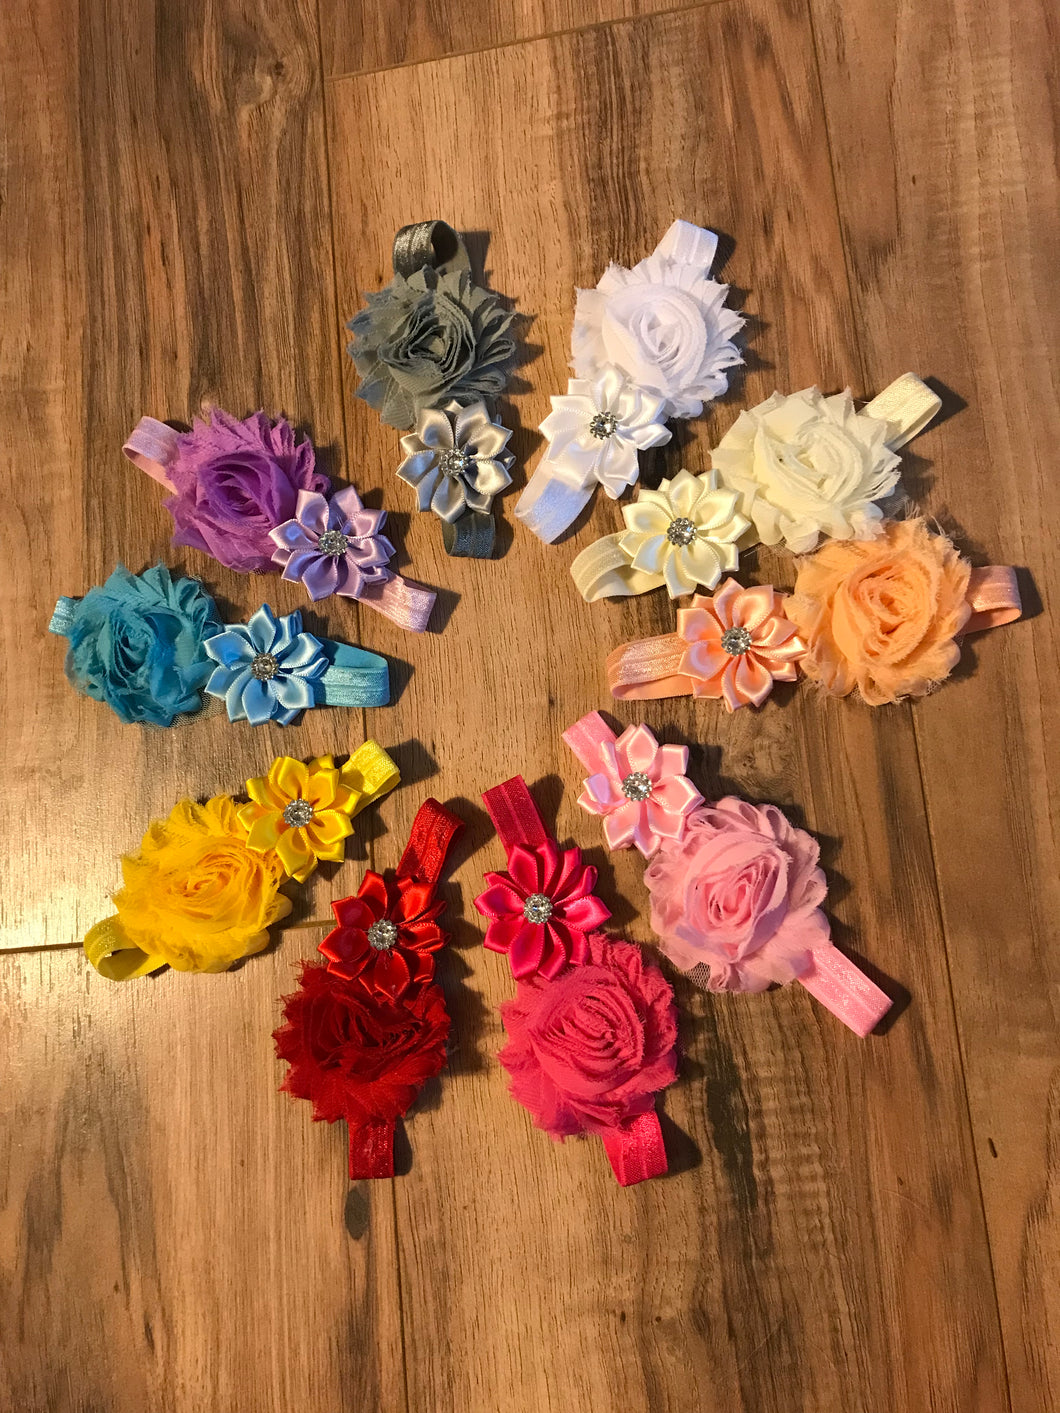 10 Baby/Toddler Shabby Chic Flower Headbands